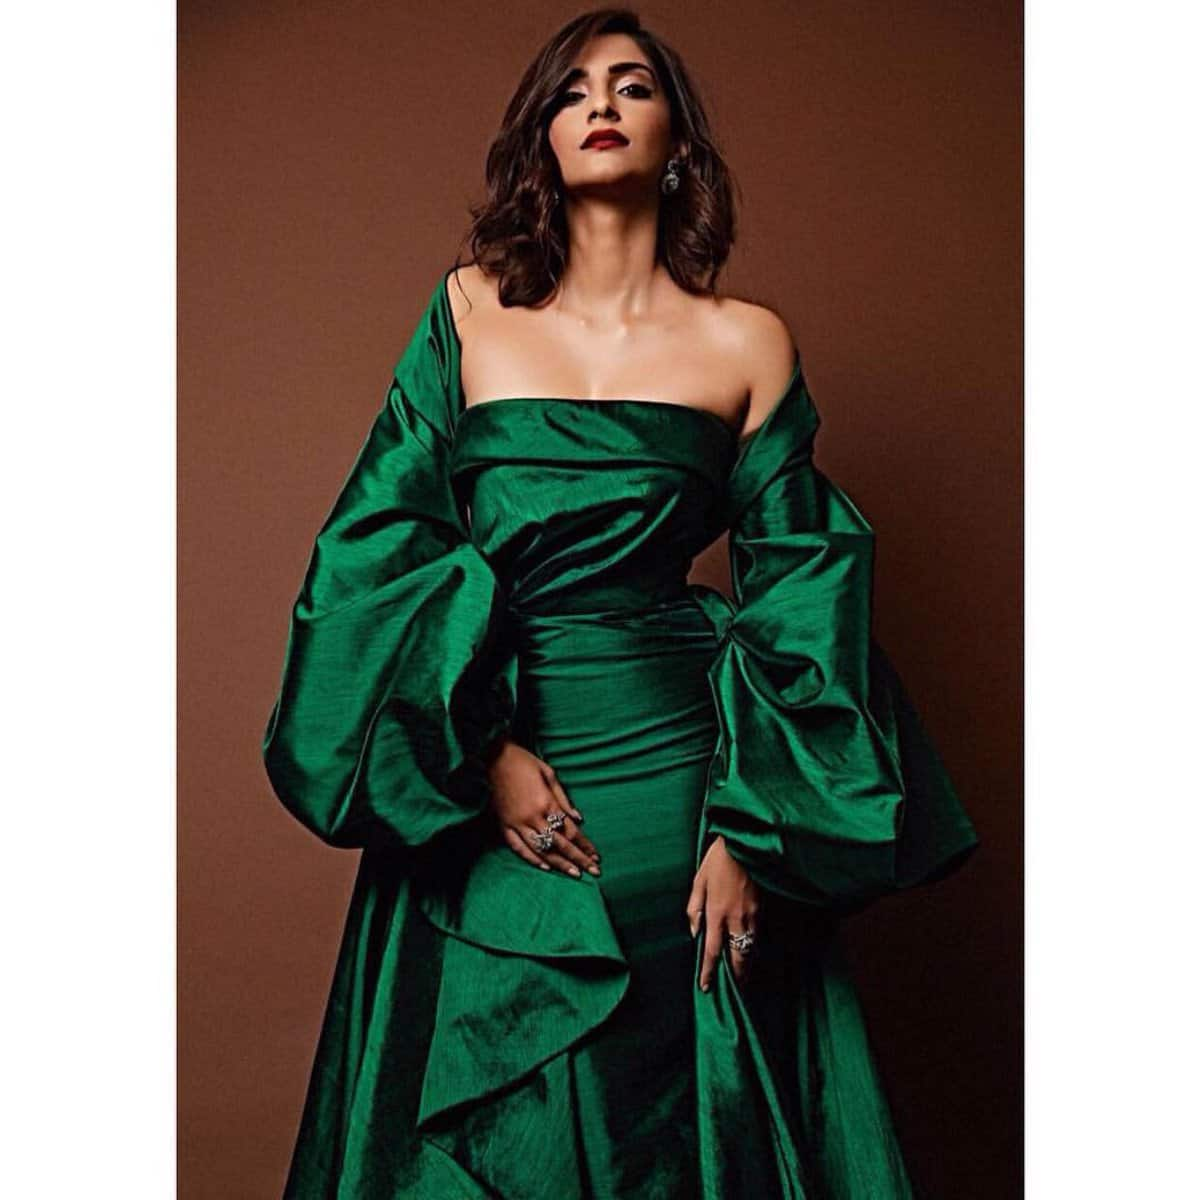 Sonam Kapoor is Vogue's Fashion Icon of the Year !